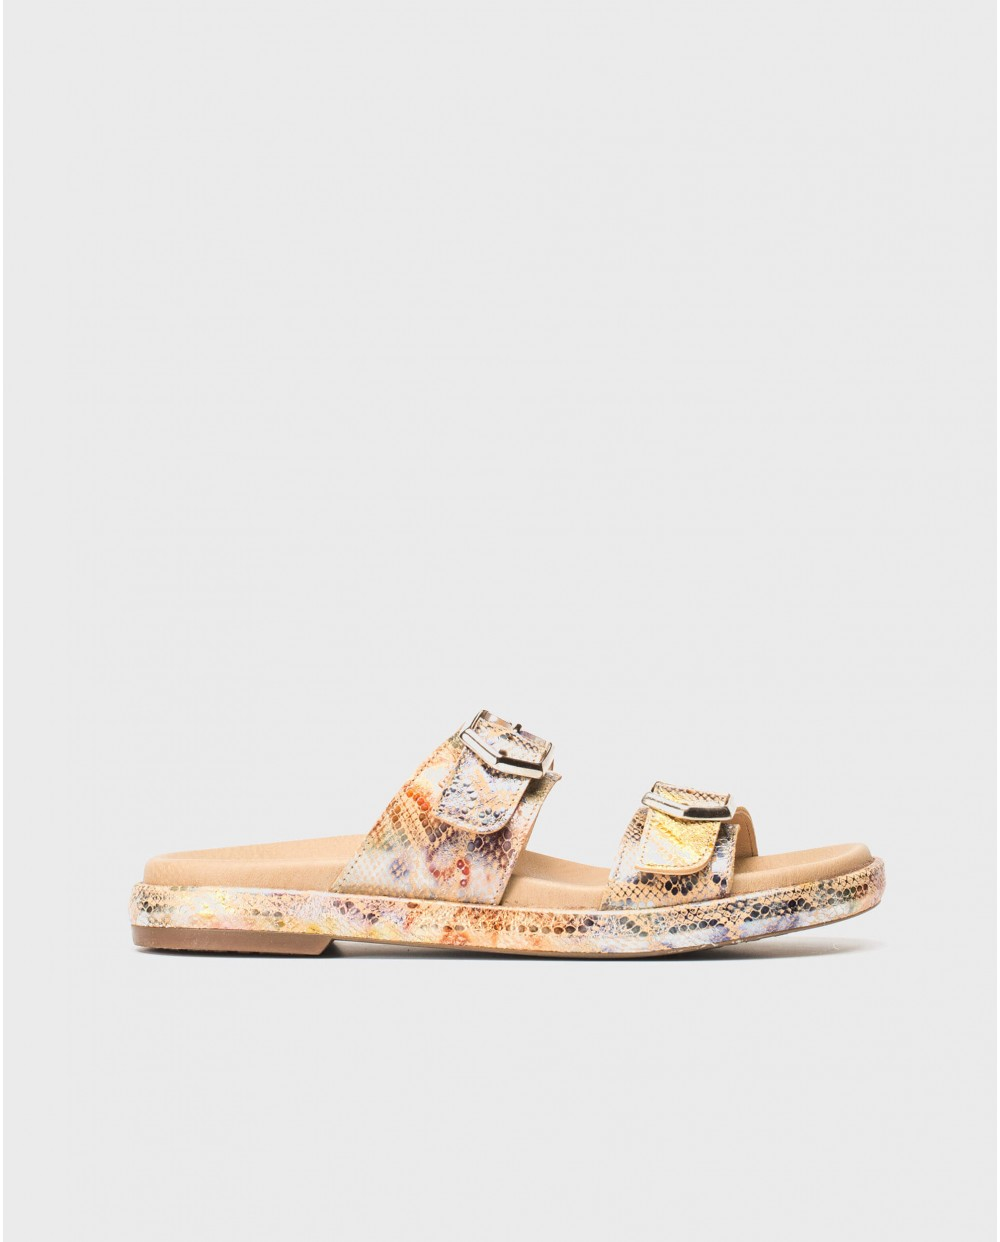 Wonders-Sandals-Flat sandal with buckles